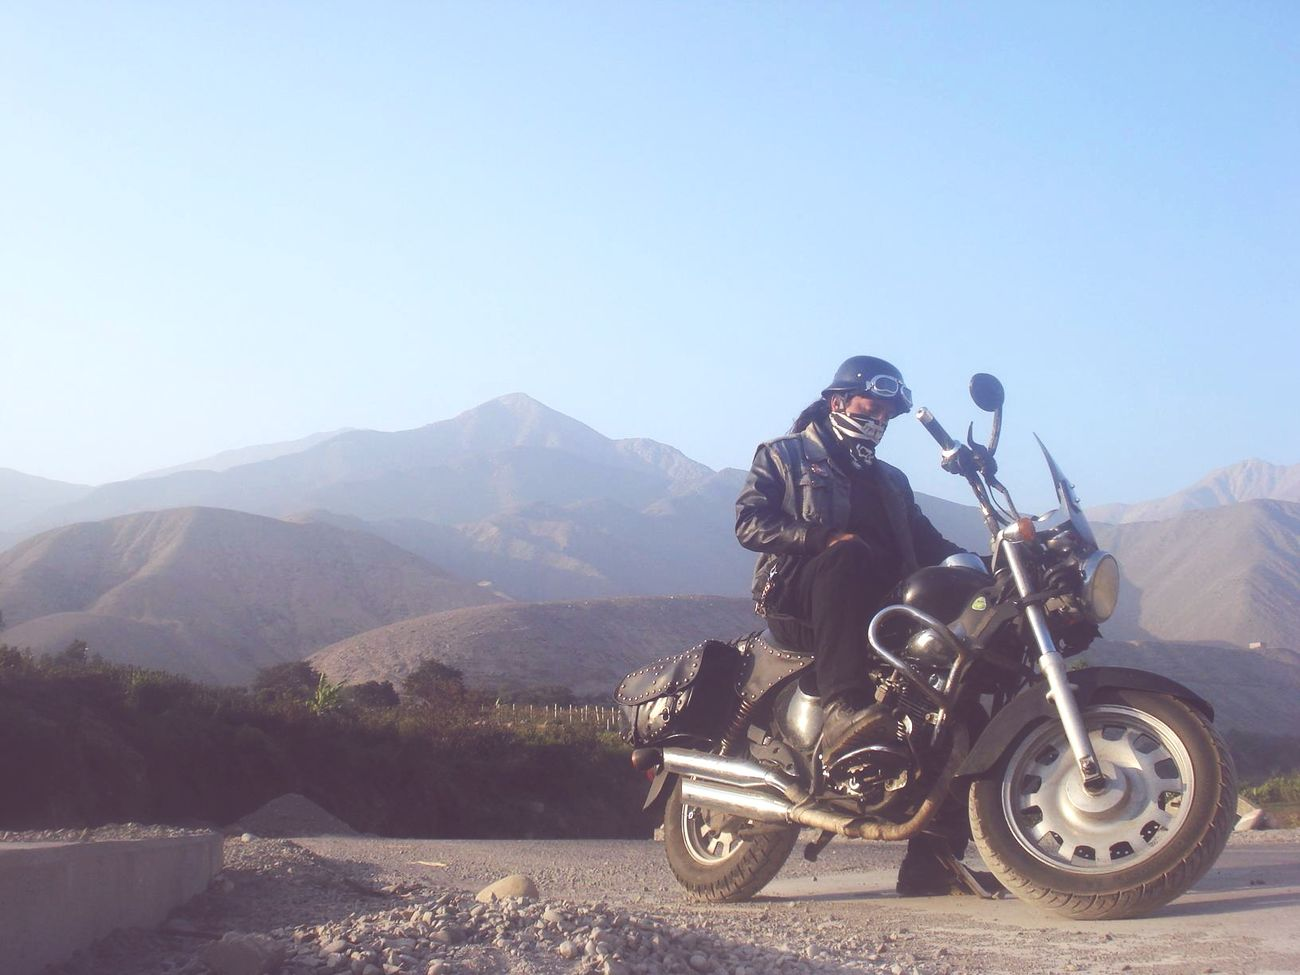 One of my trips by Calango, east side of district Mala province of Lima, Peru. A really good place to get into nature, you can go by car but i recommend motorcycles, you can get there some special soups and folk meating. Bikeordie Ontheroad Bikers Brotherhood Mc Caldo DeCamarones